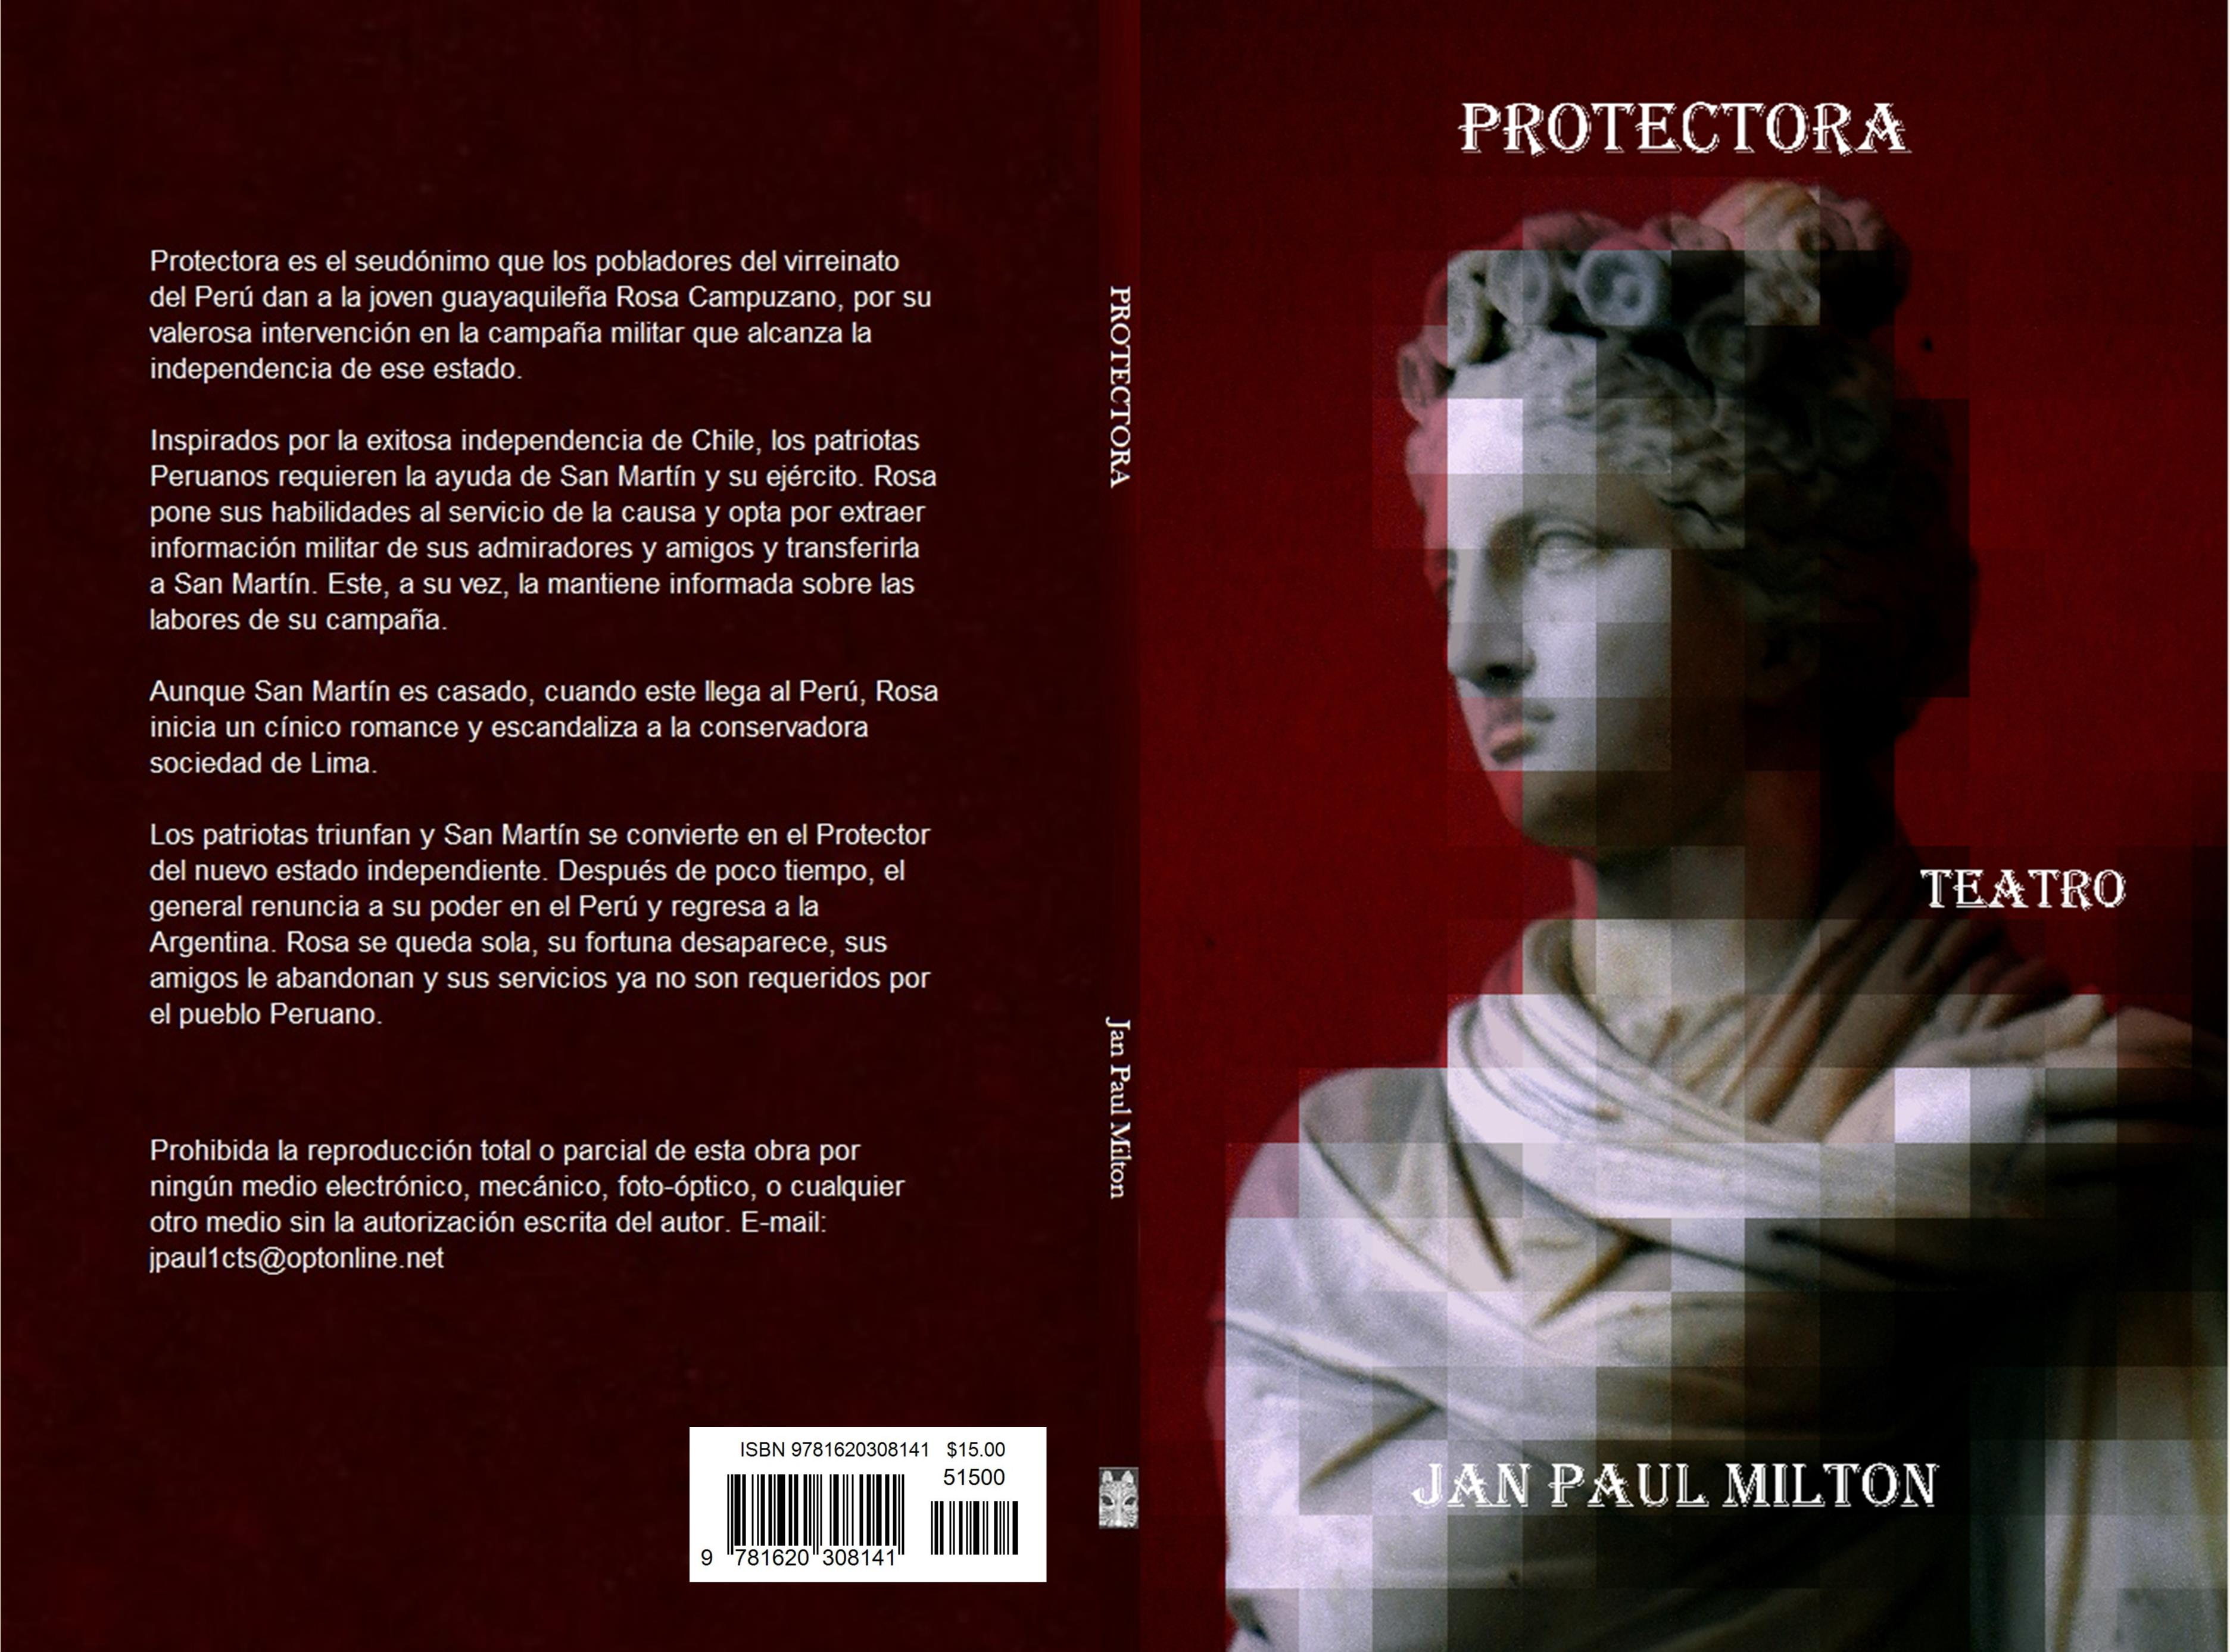 Protectora cover image